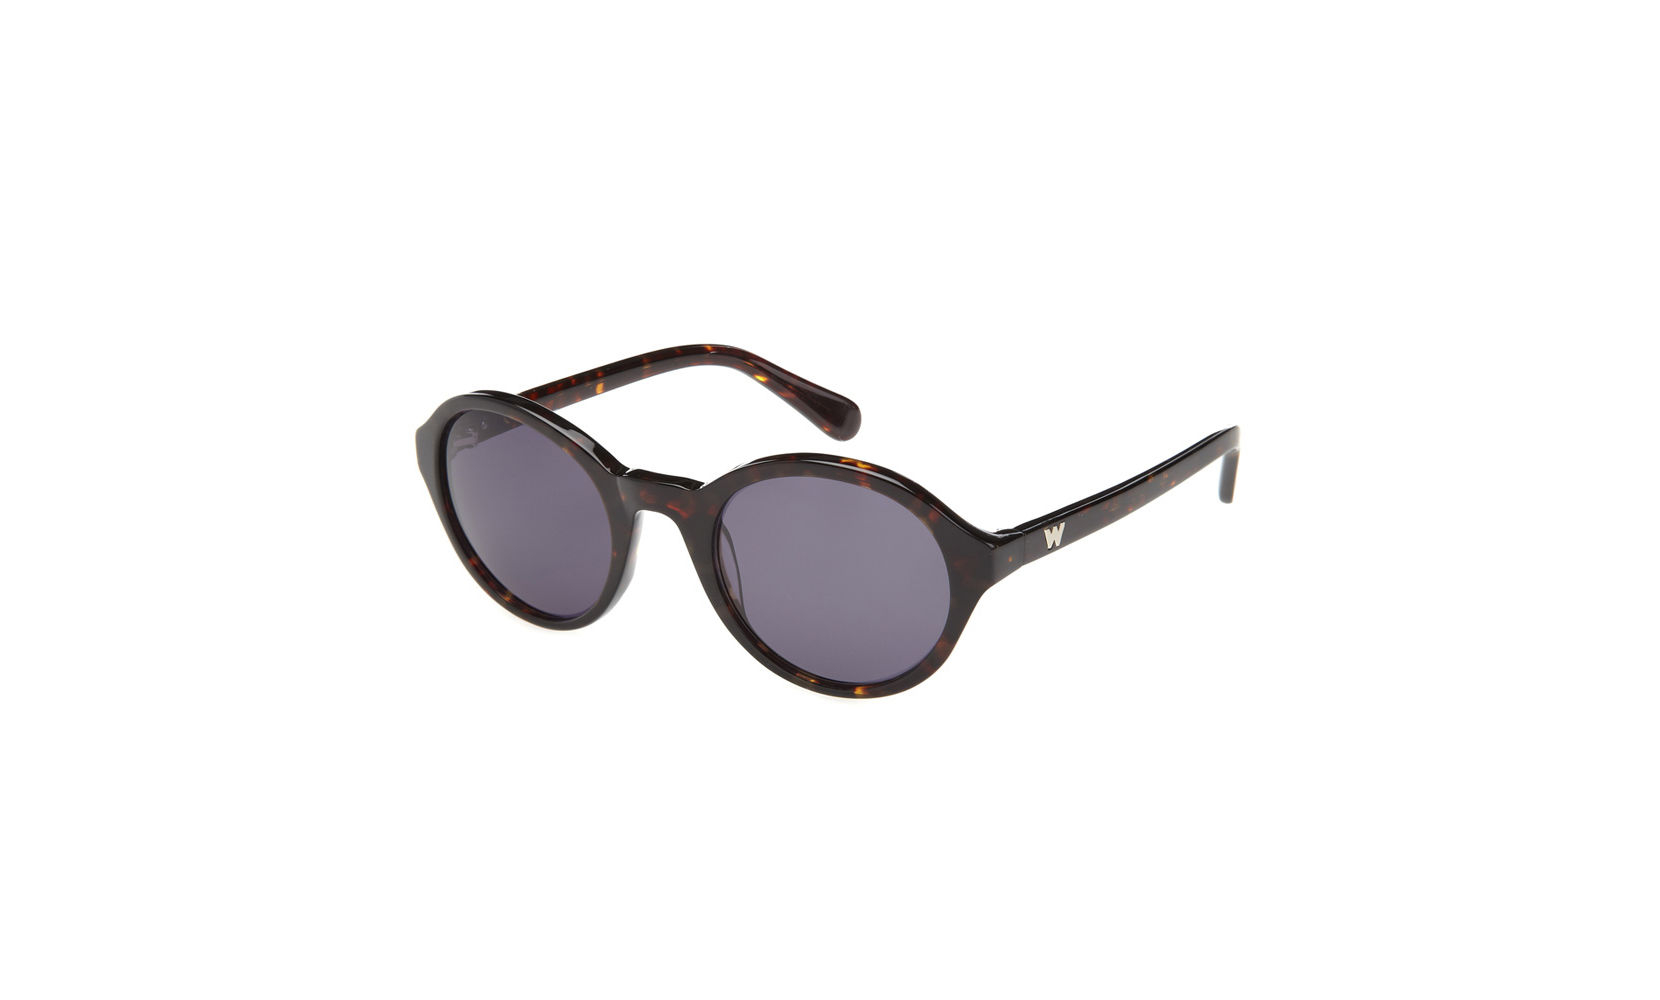 jimmy choo 95 eyewear express lafayette simply accessories